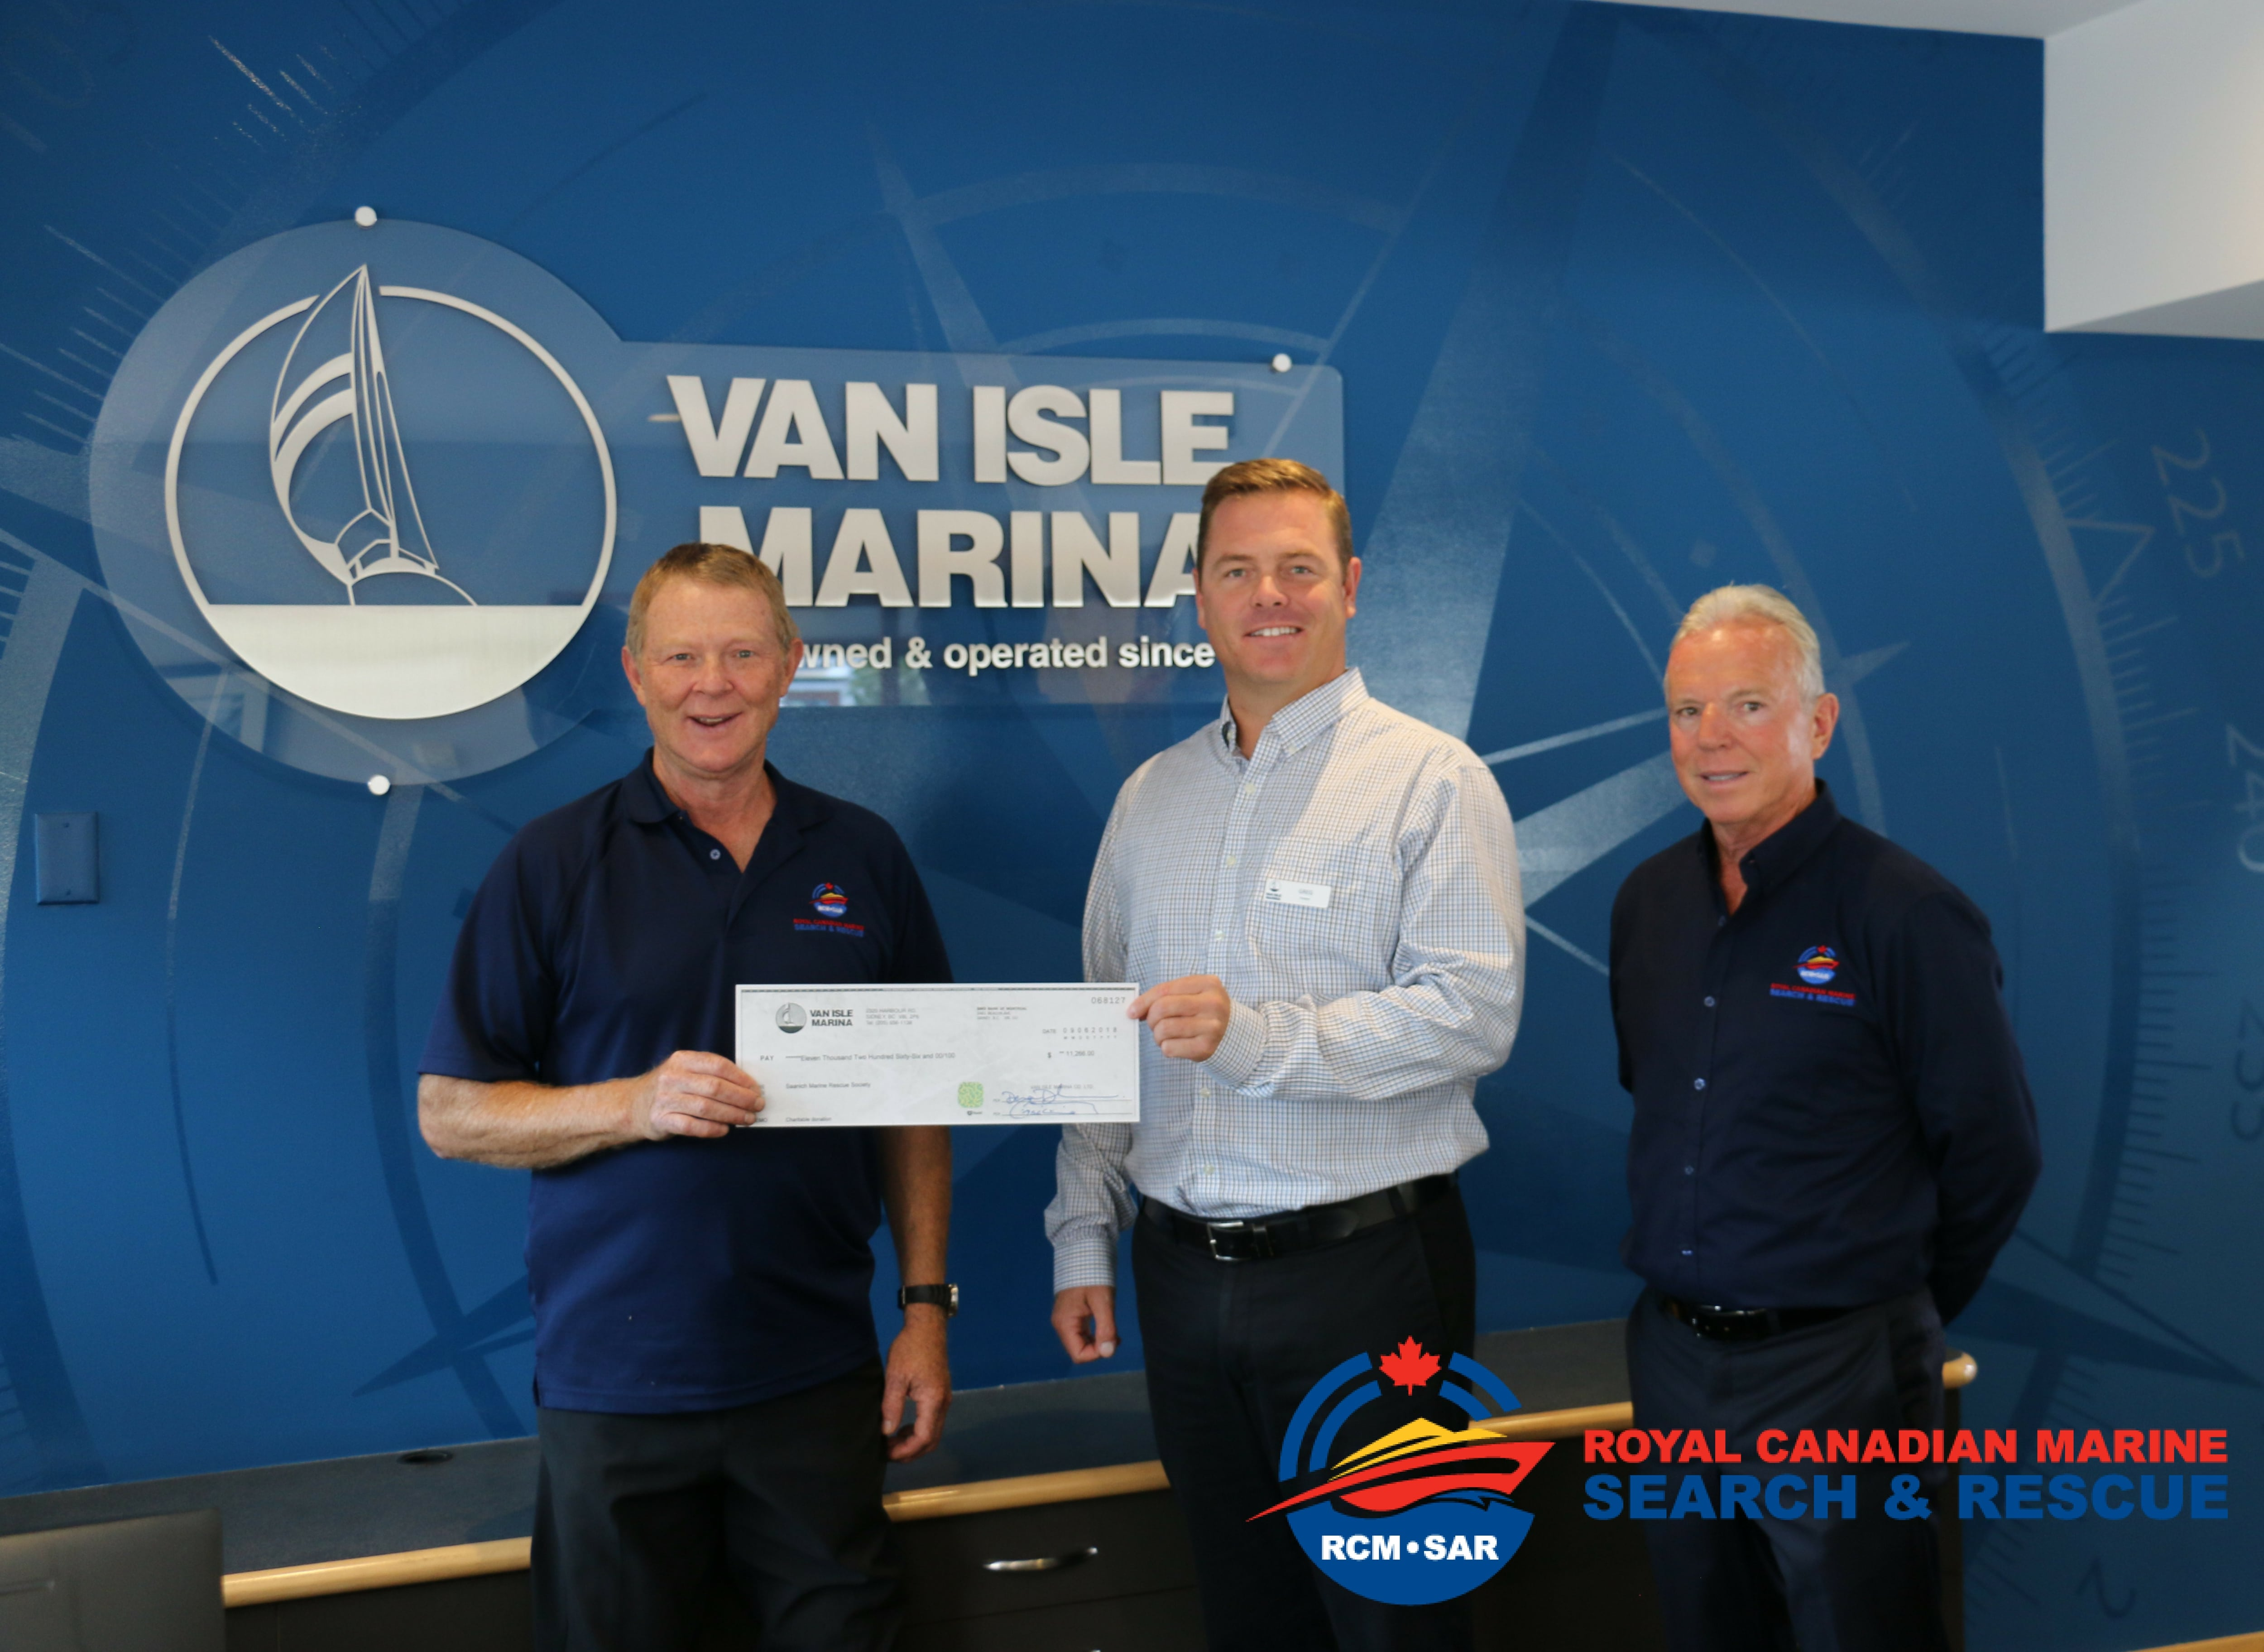 Van Isle Marina Donates to Royal Canadian Marine Search and Rescue